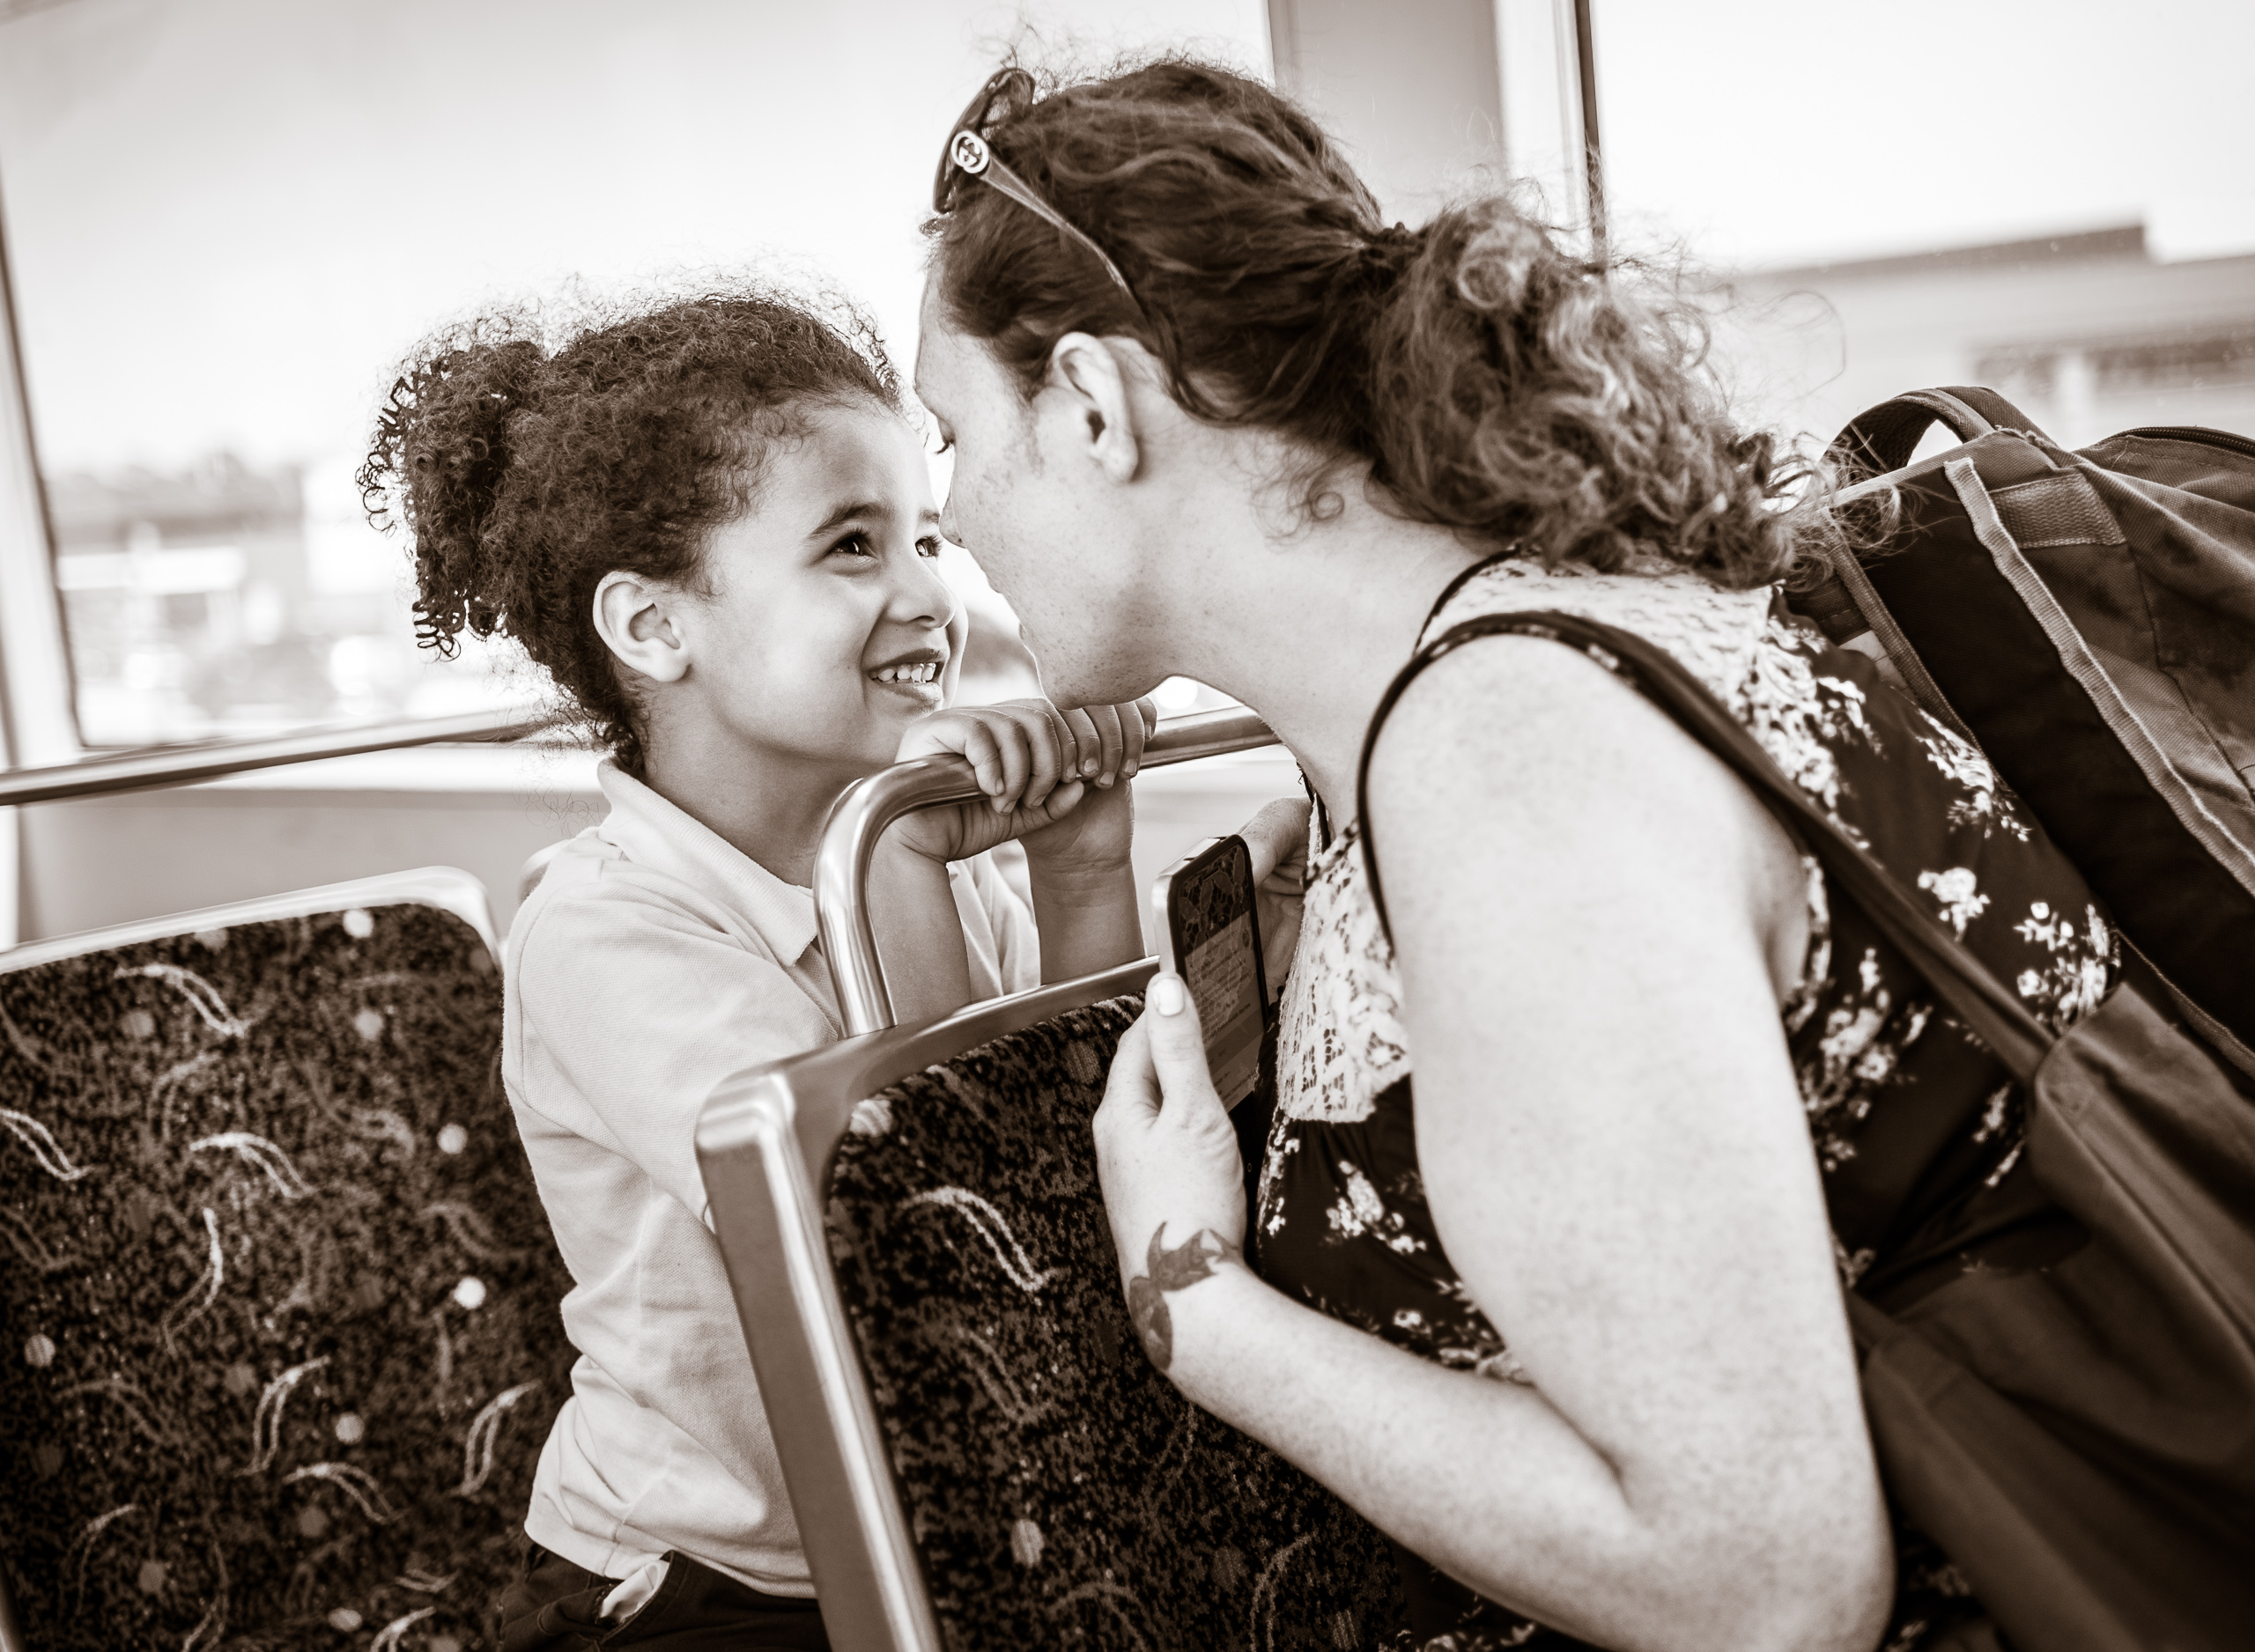 a mother and daughter riding the LA Metro's Green Line. Mom sits one seat in front and turns back toward her daughter. The girl's tiny hands hold the rail on the seat back as she stares lovingly into her mother's eyes